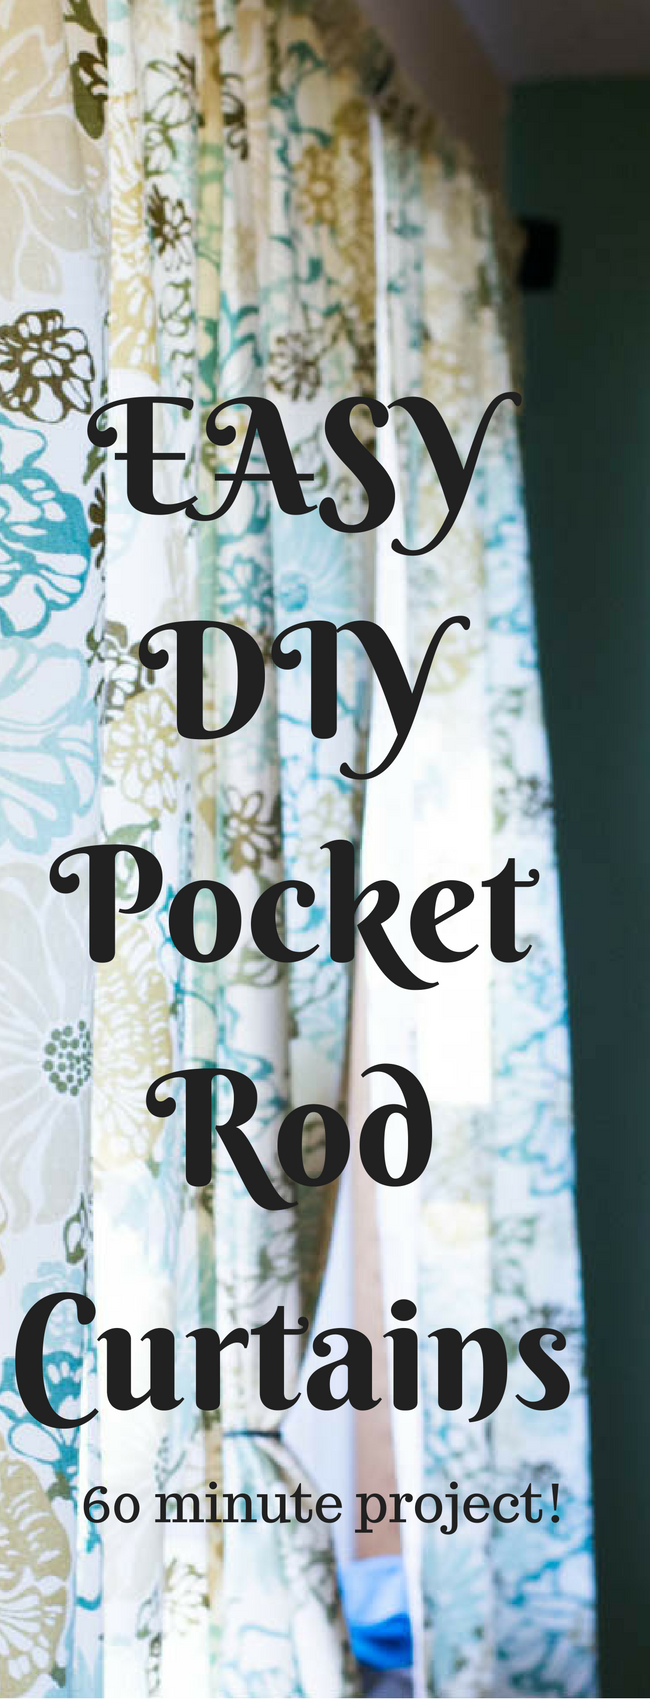 It doesn't have to be hard to make your own curtains - here is an easy DIY curtains tutorial (this is specifically for rod curtains). It can be an affordable option for updating the look of any room! via @clarkscondensed